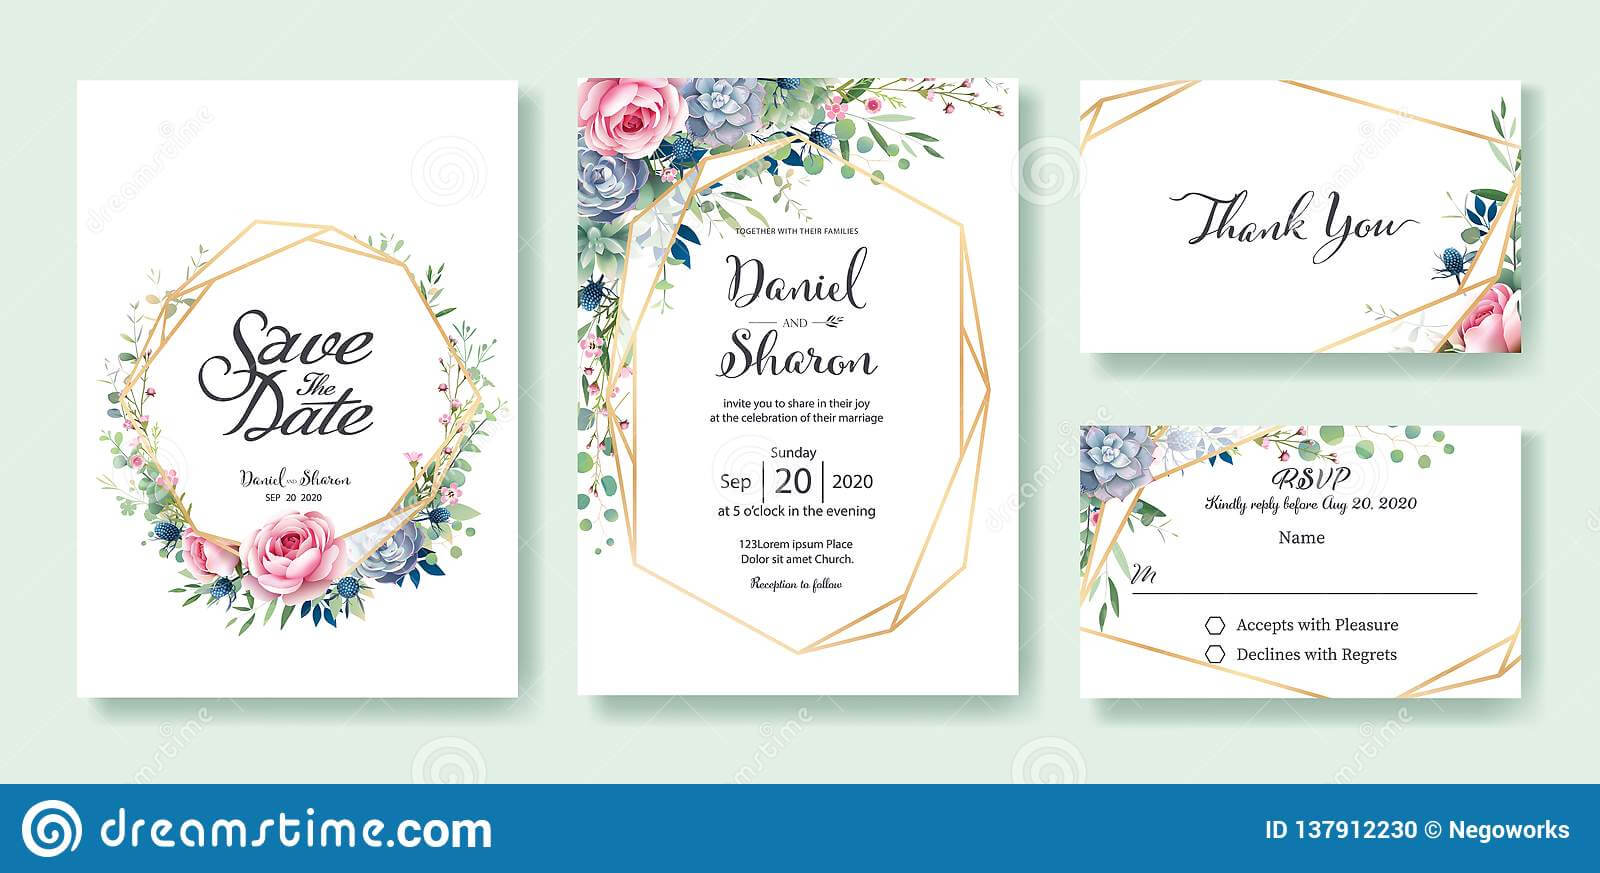 Wedding Invitation, Save The Date, Thank You, Rsvp Card within Template For Rsvp Cards For Wedding